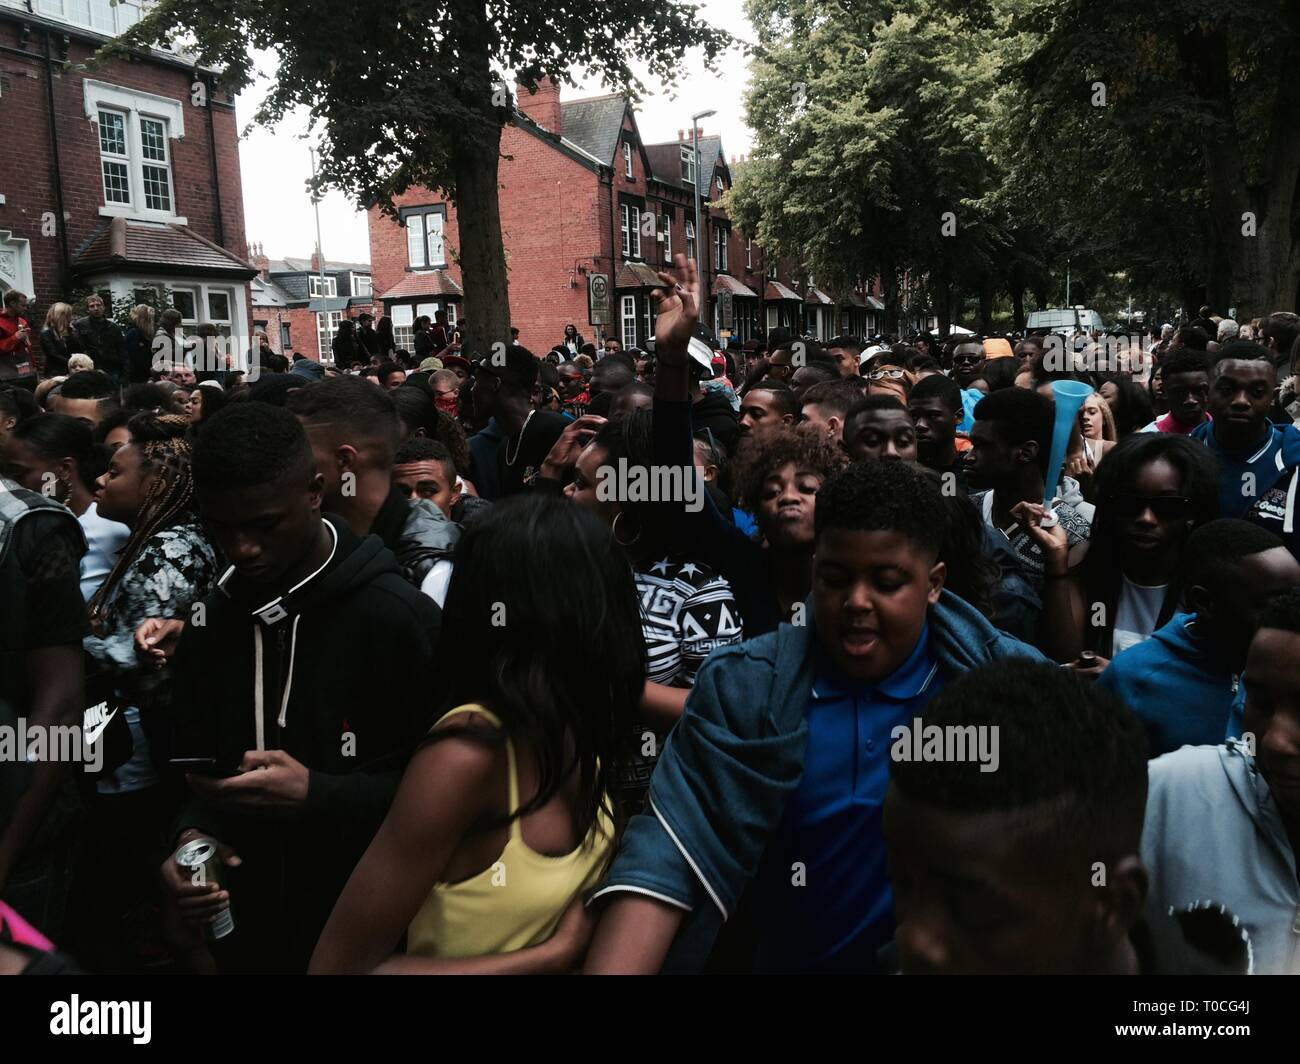 black people in street riot, public unrest - Stock Image